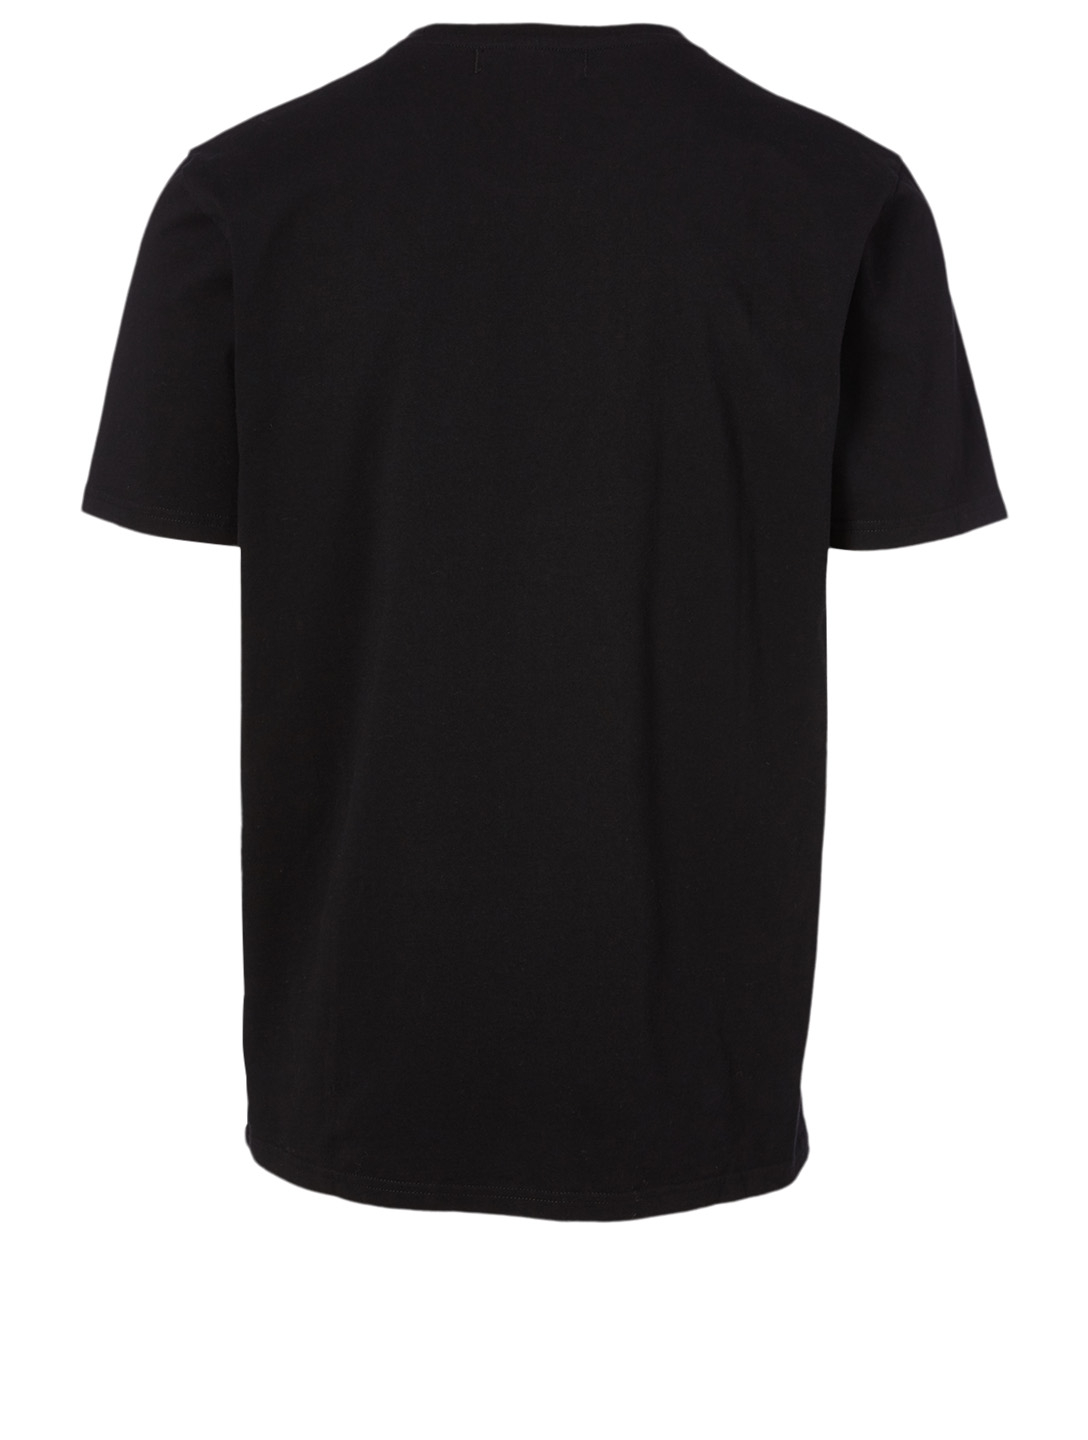 CRAIG GREEN Cotton T-Shirt With Hole Men's Black